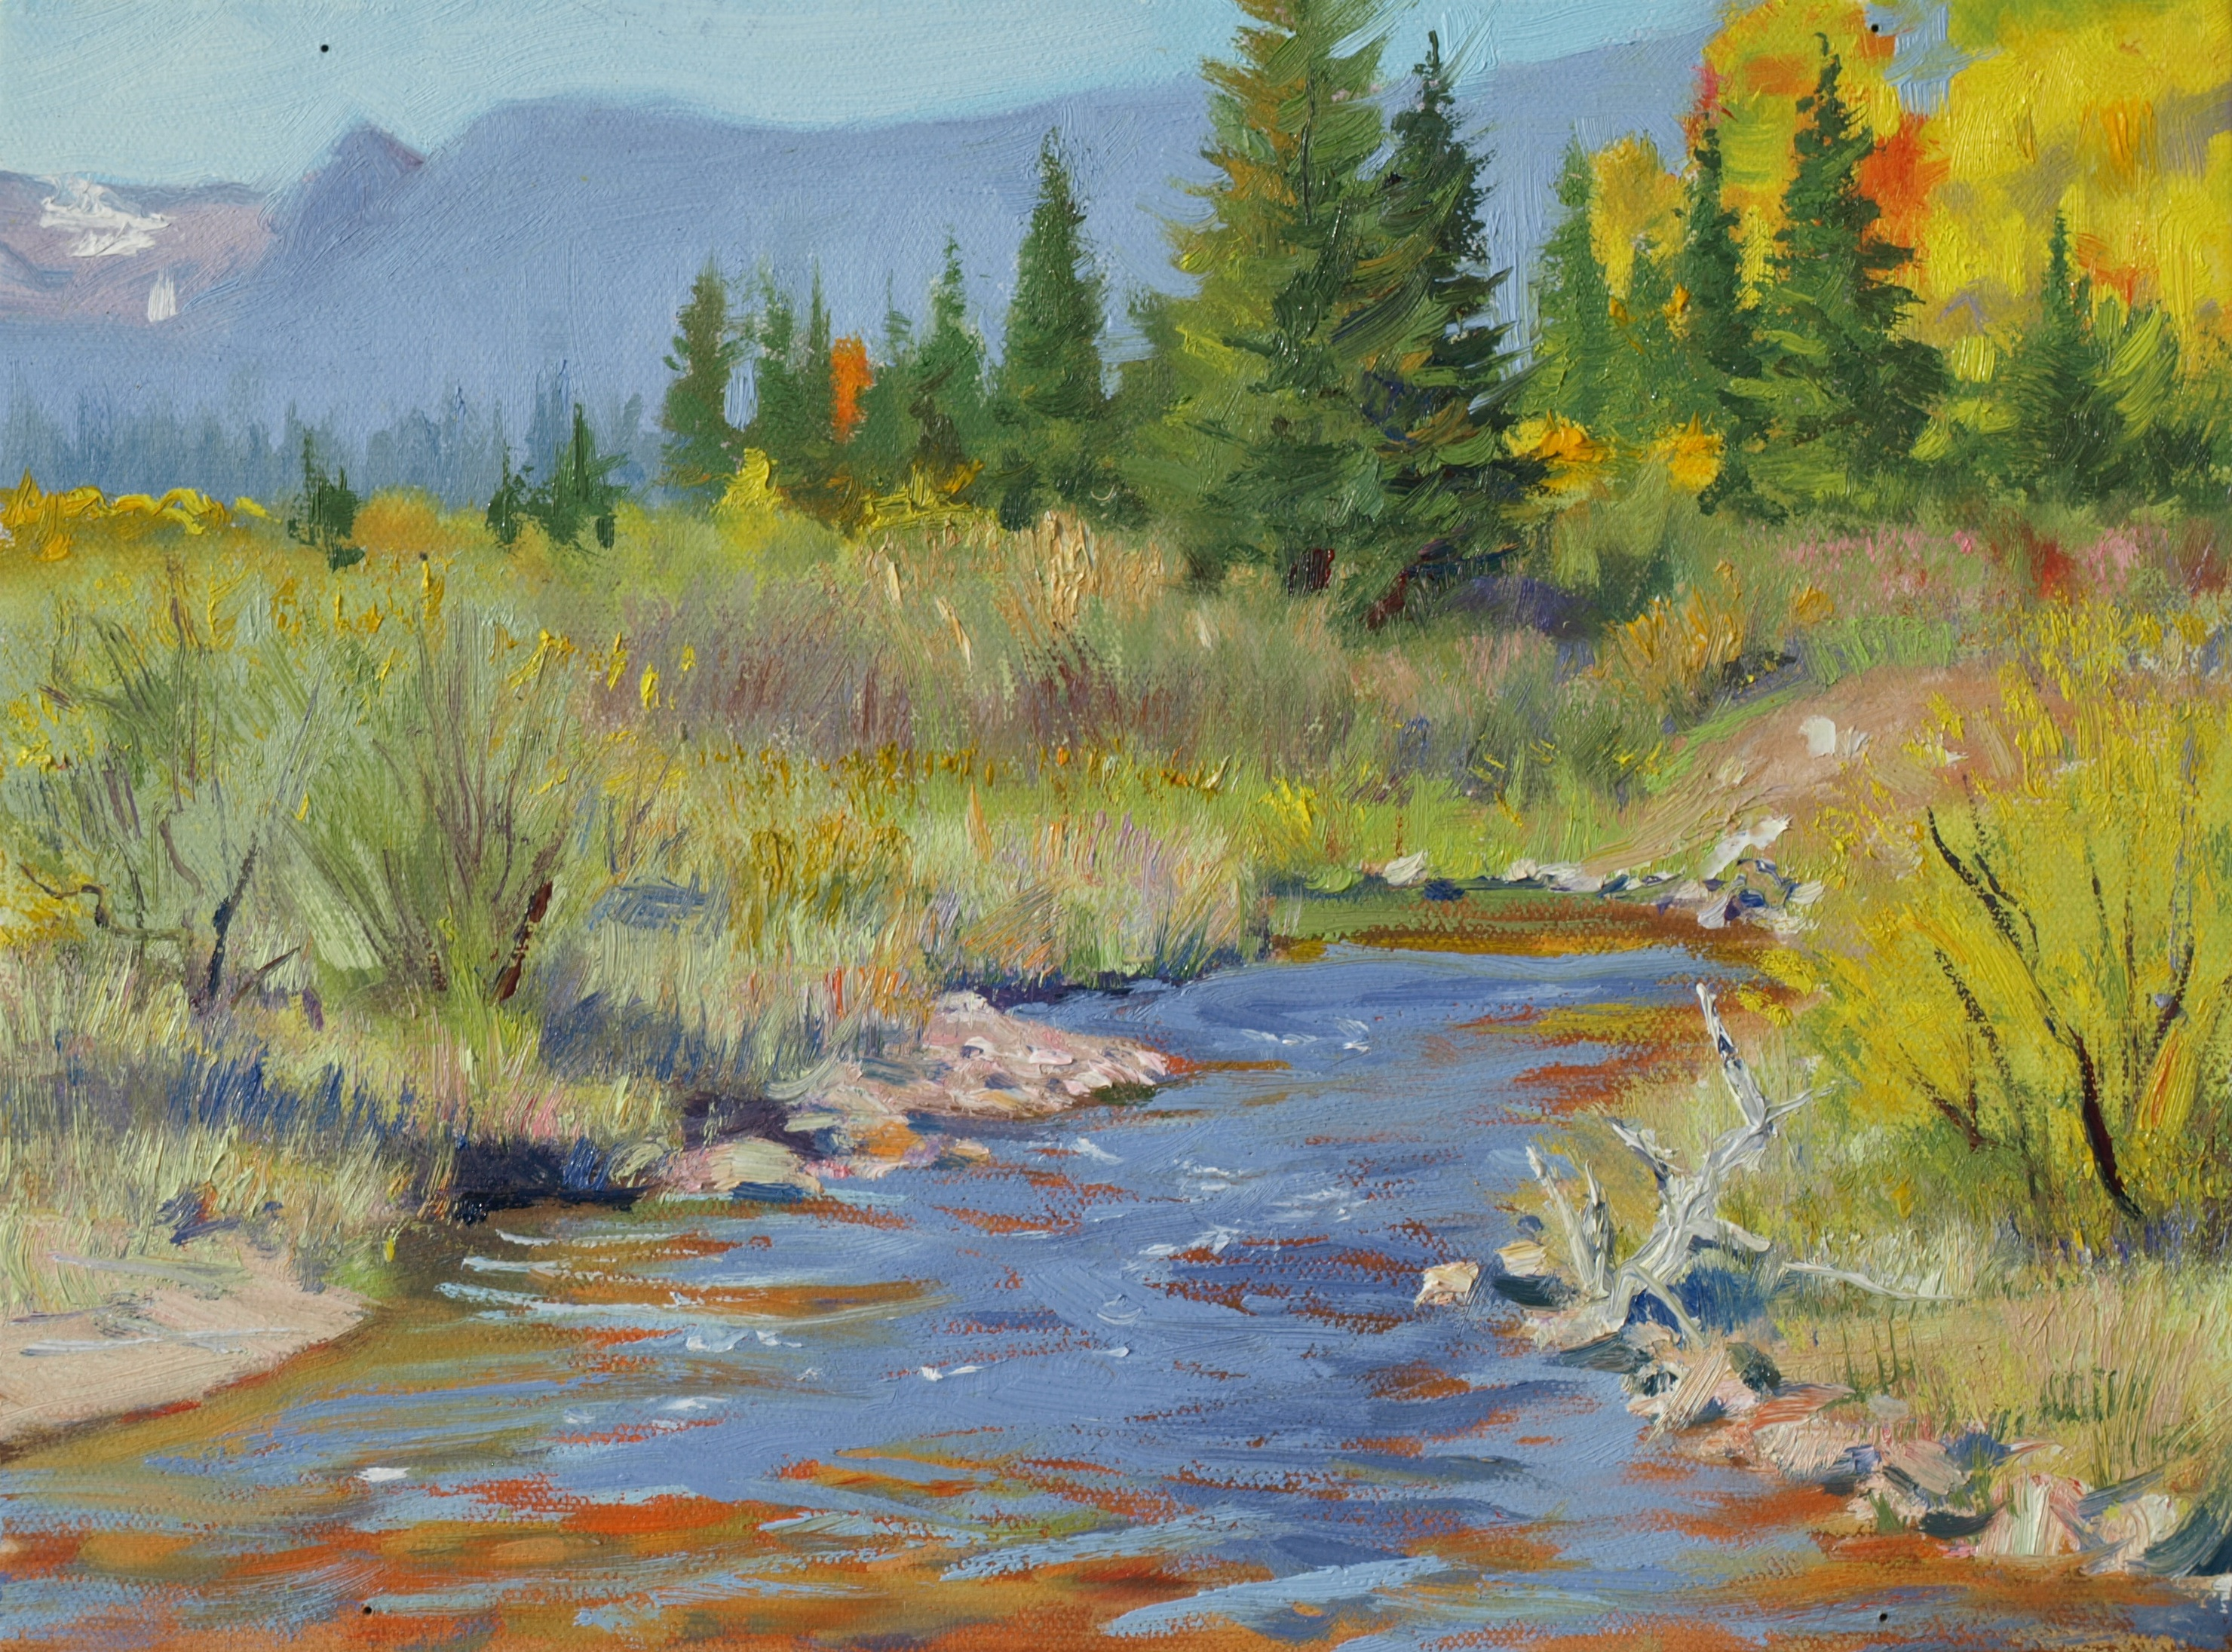 <p>South Fork of Big Creek painted by Michael Charron.</p>